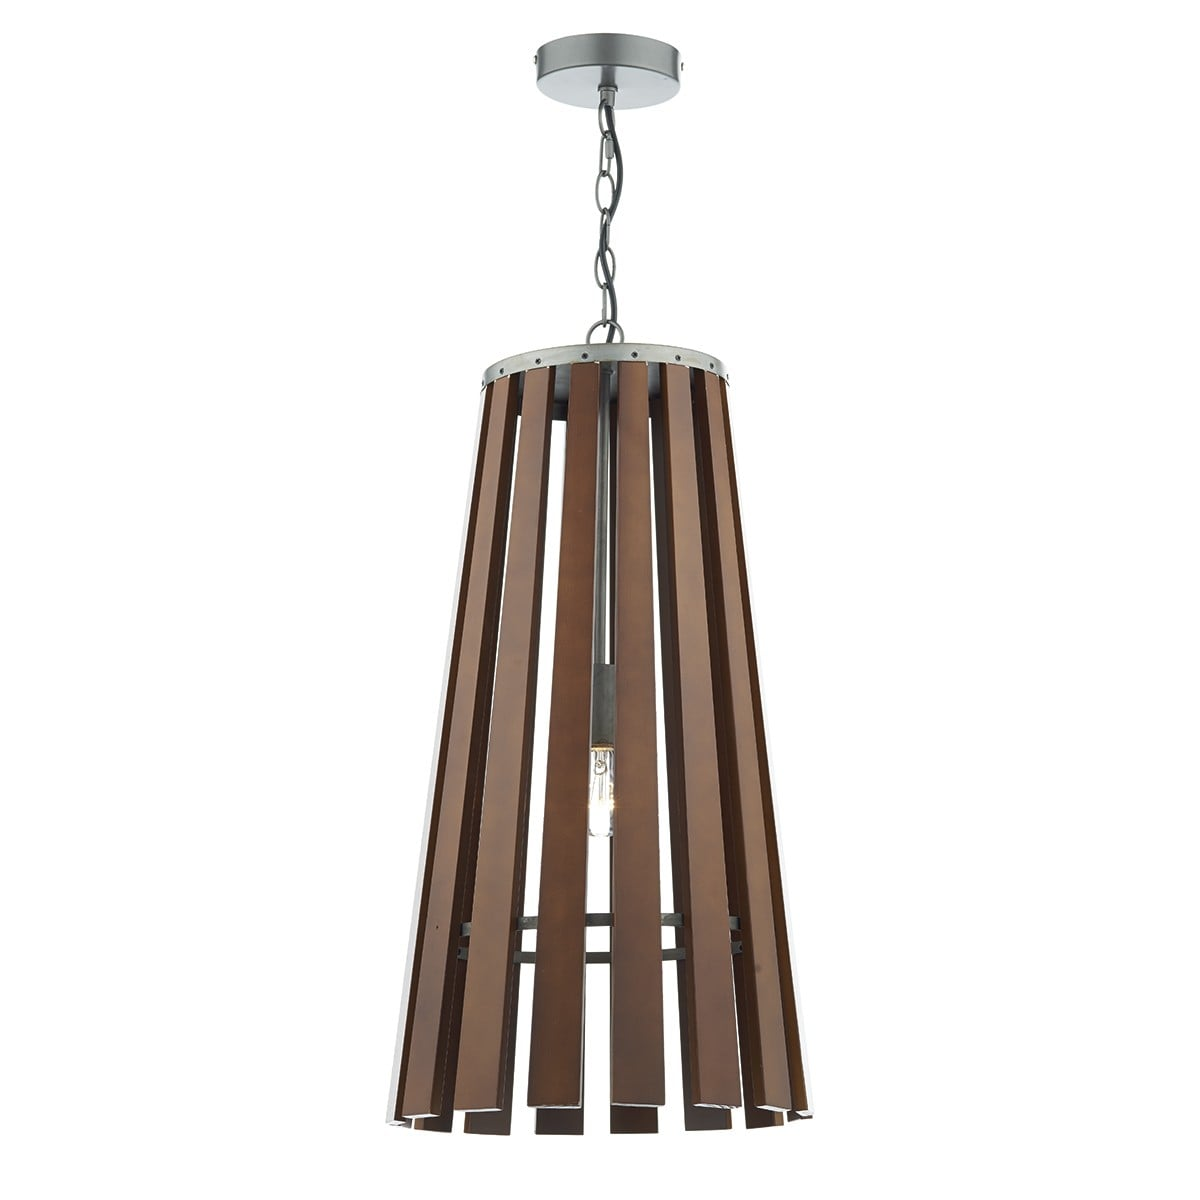 Dar MUL0147 Mullion 1 Light Pendant in Wood